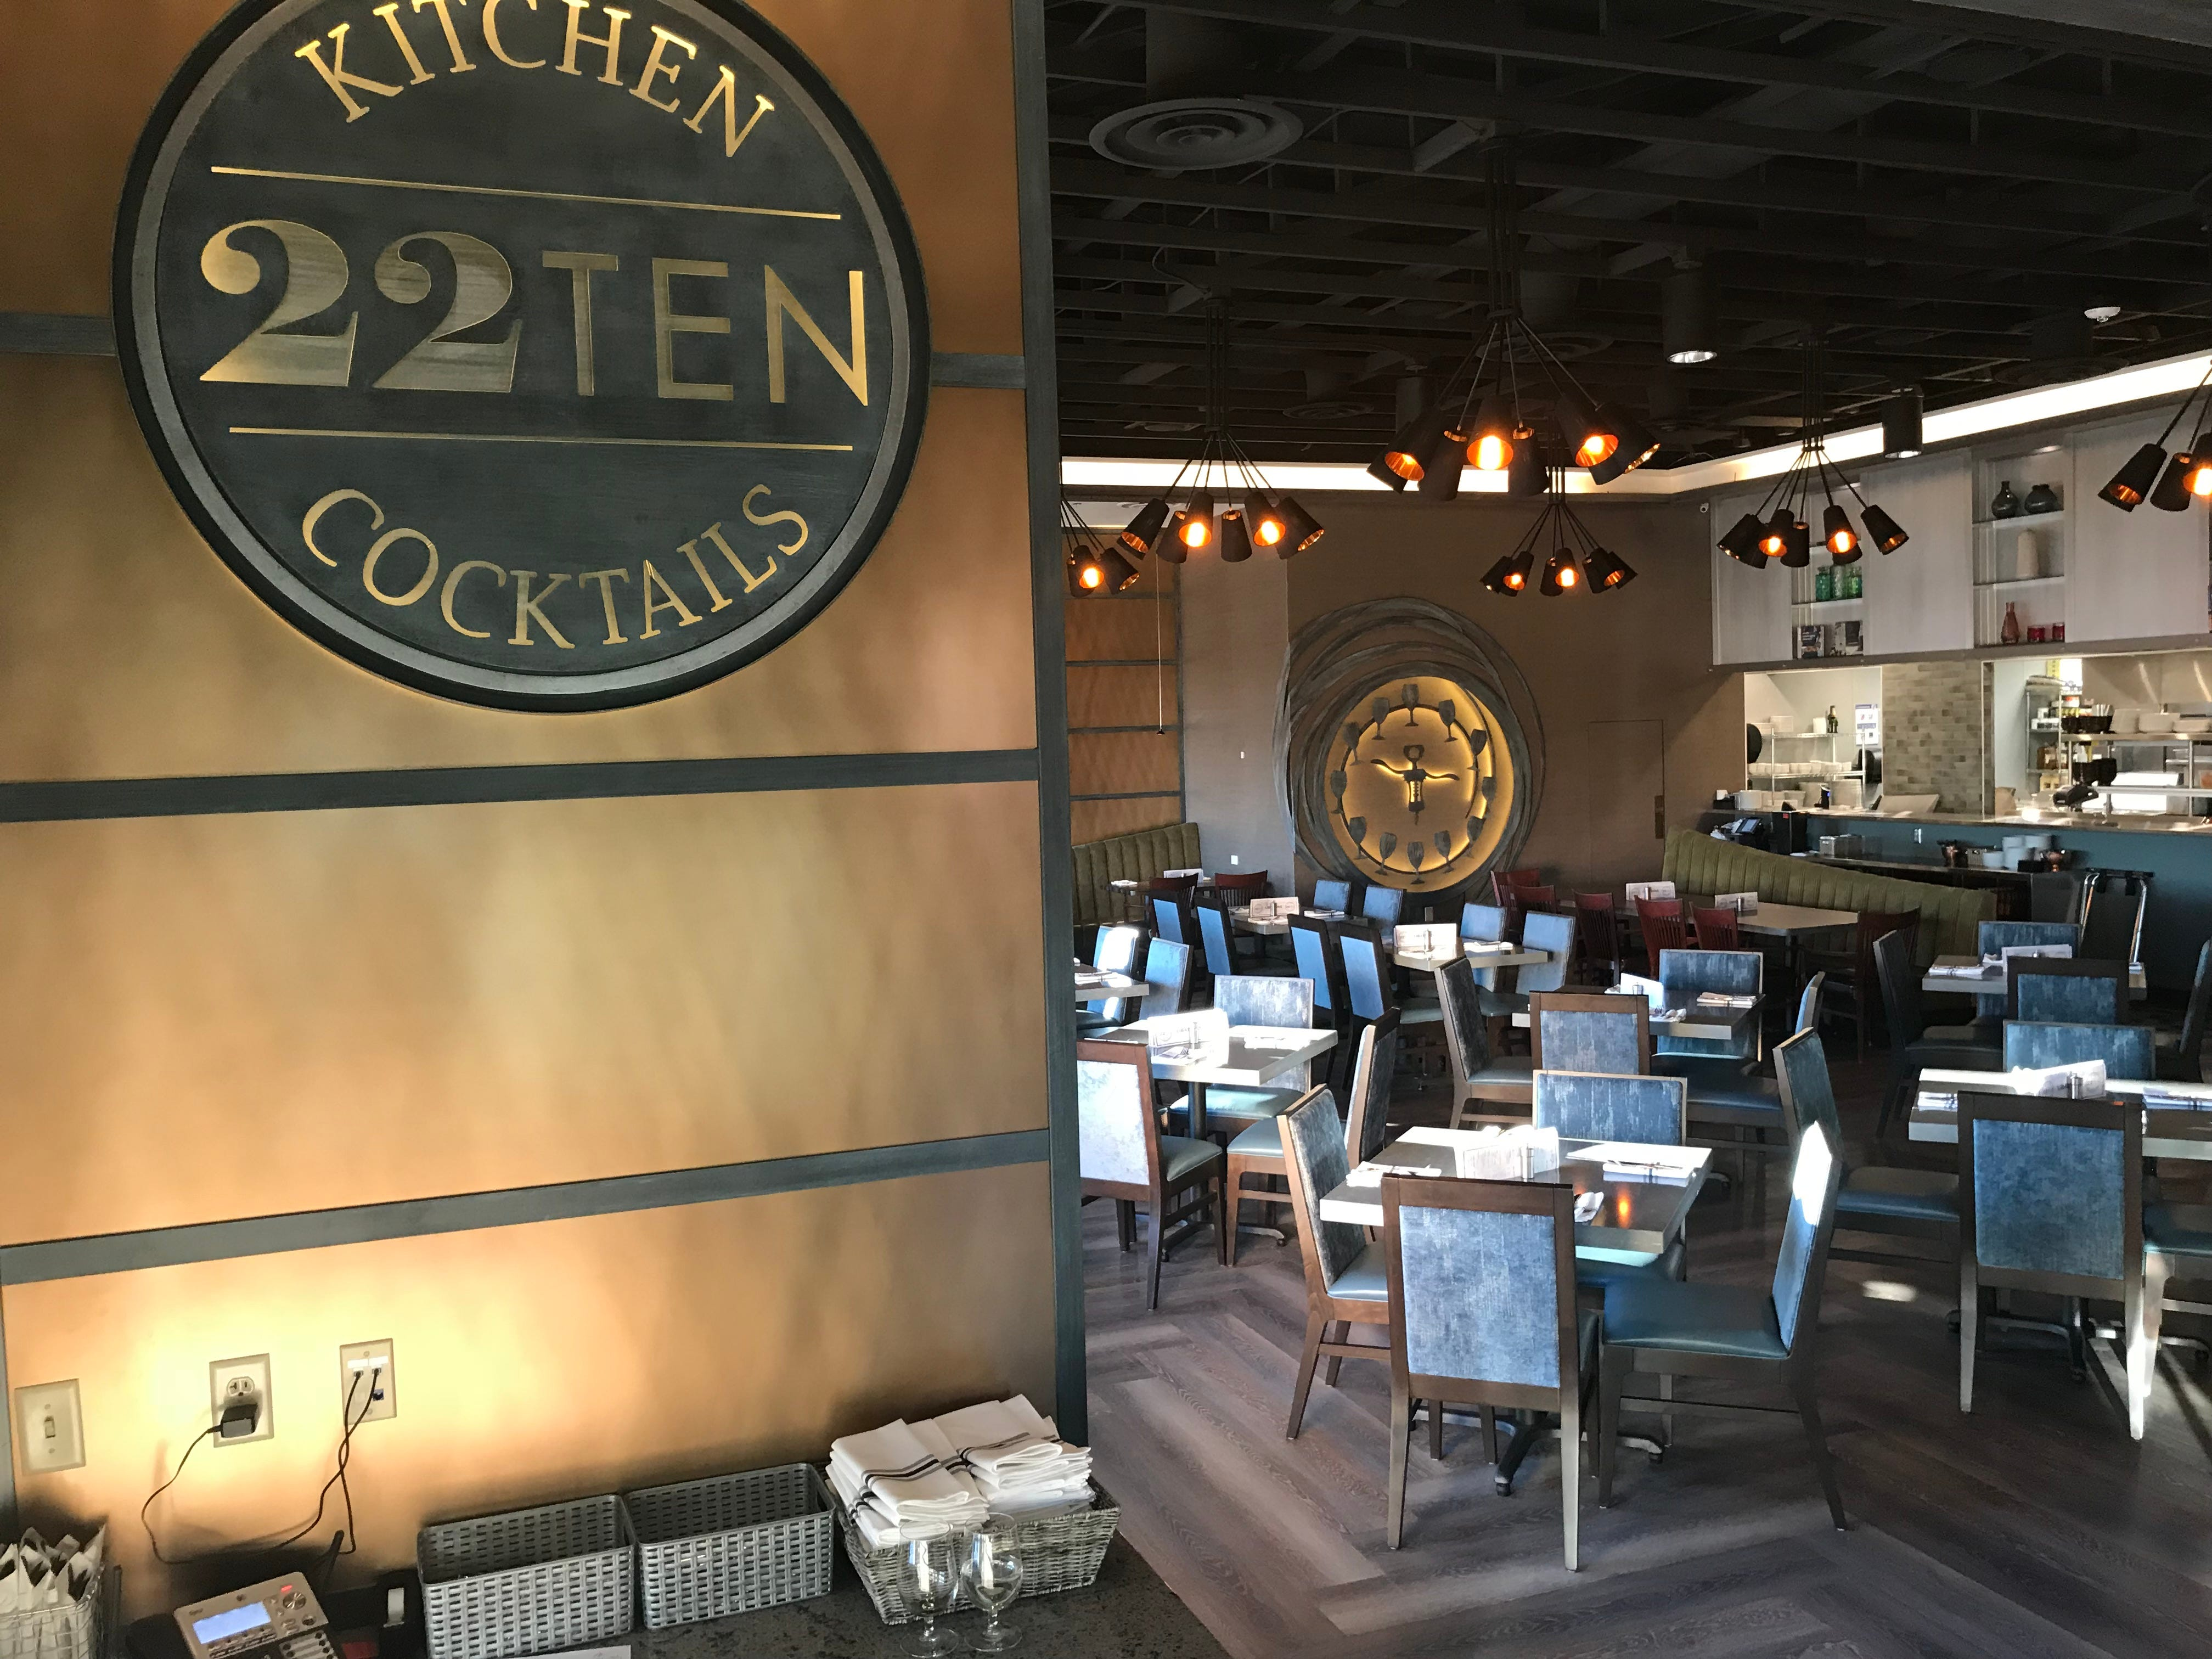 22TEN Kitchen & Cocktails opened Friday in southwestern Sioux Falls. It offers a new twist on American classics and is designed around an open concept seating area.